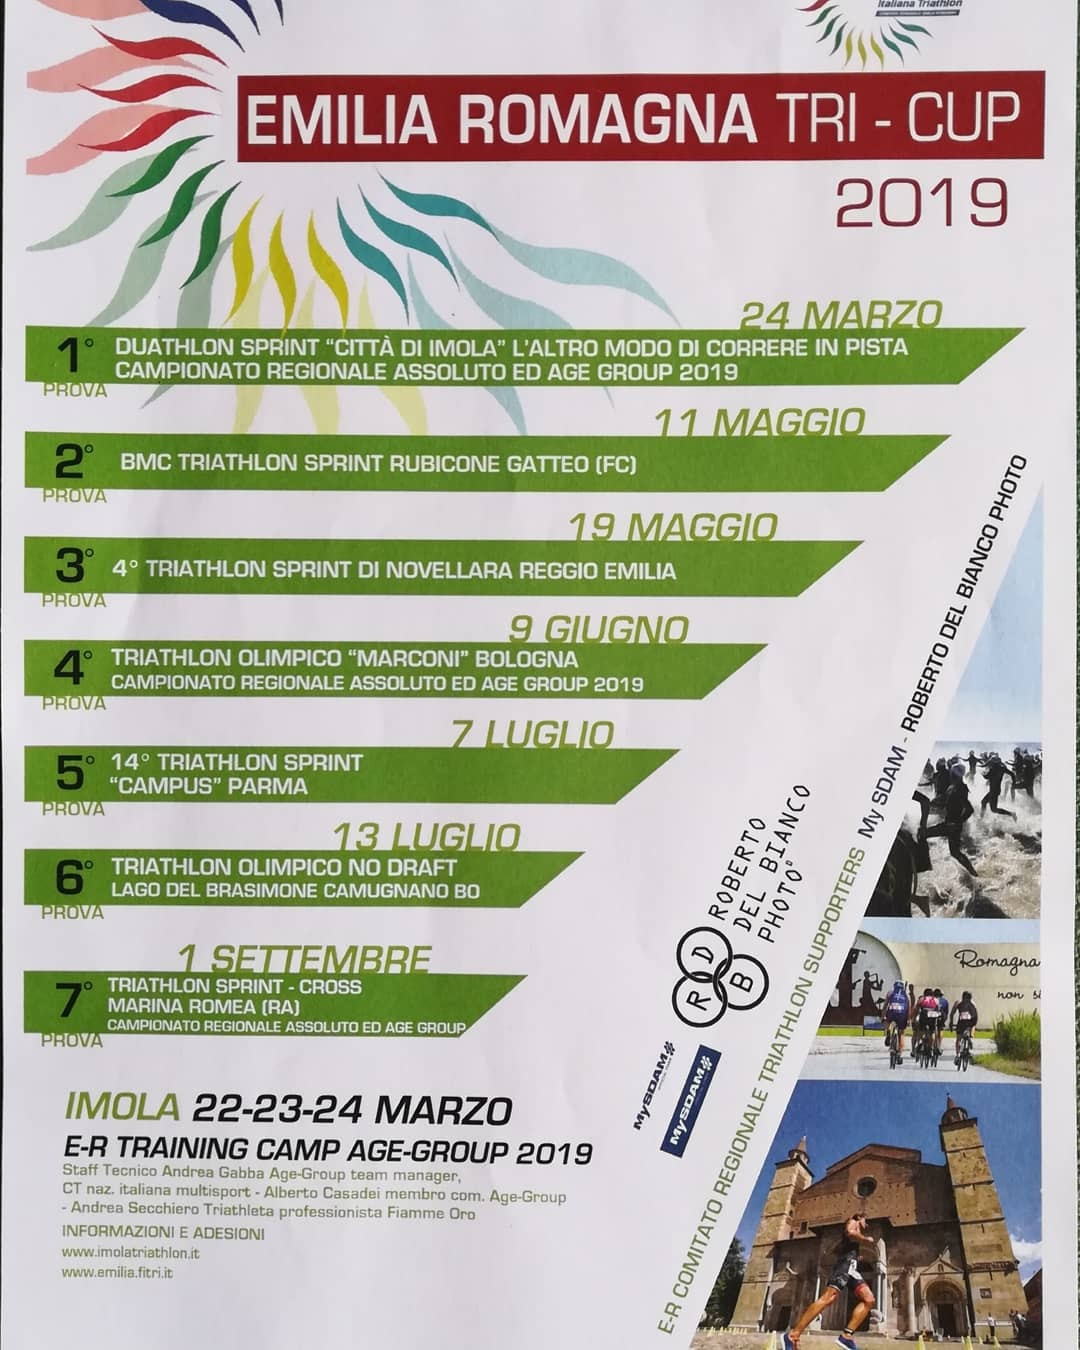 TriCup 2019 1